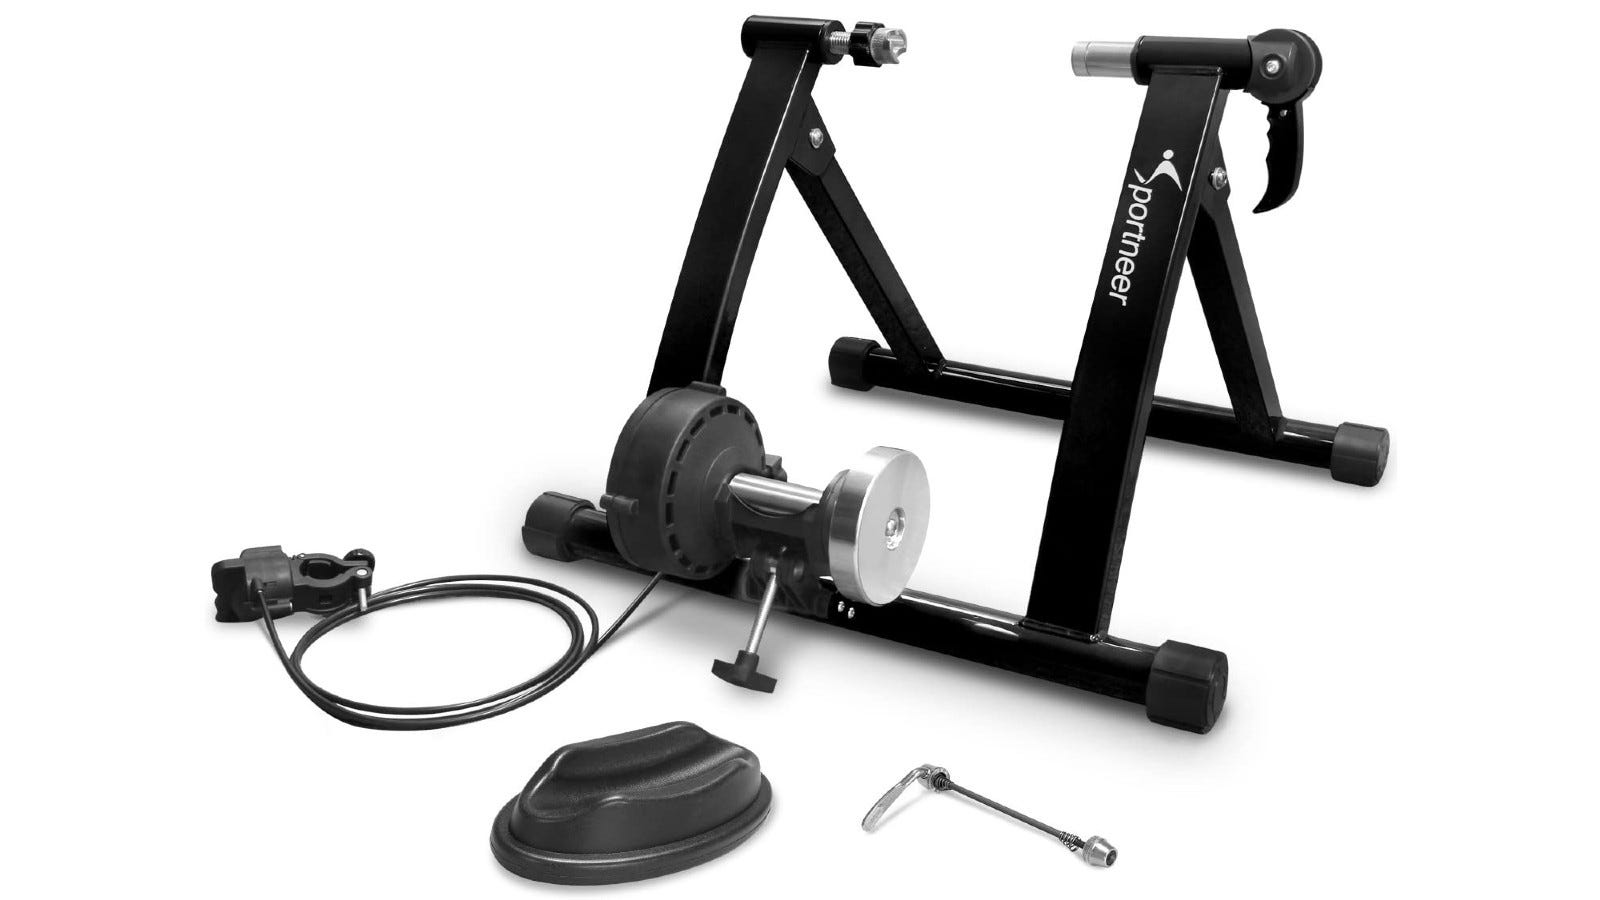 A black bike trainer with its attachments spread in front of it.